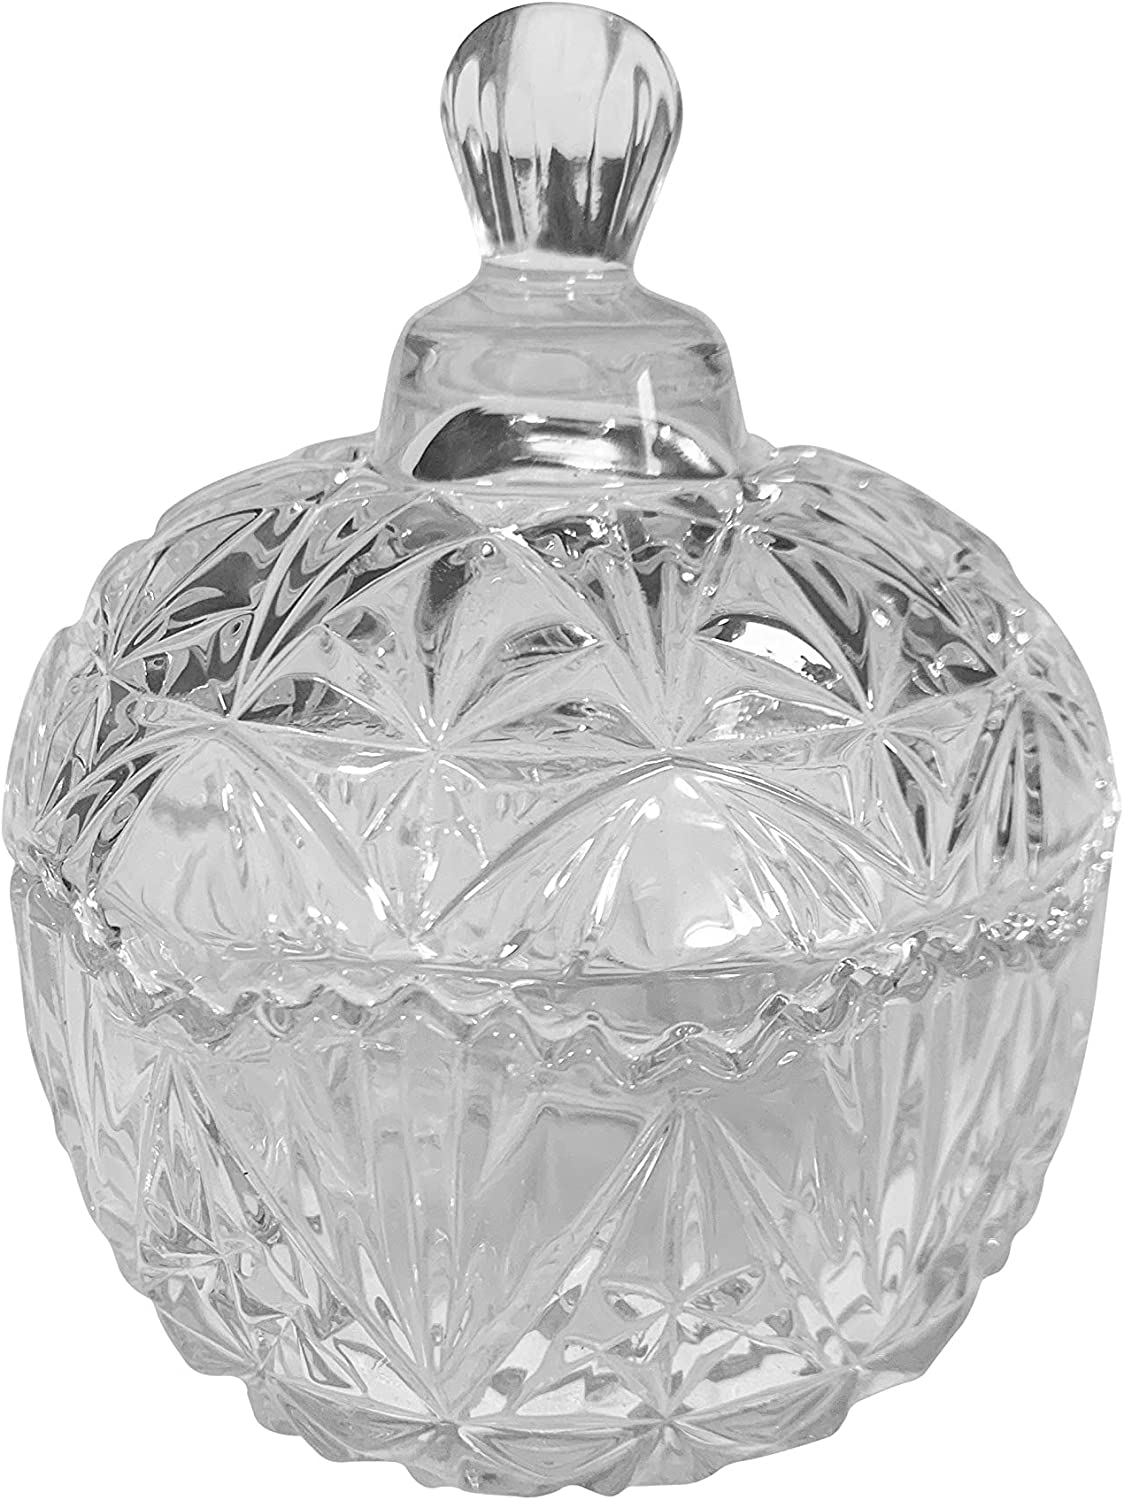 Glass and Silver Candy Dish  Decorative Bowl